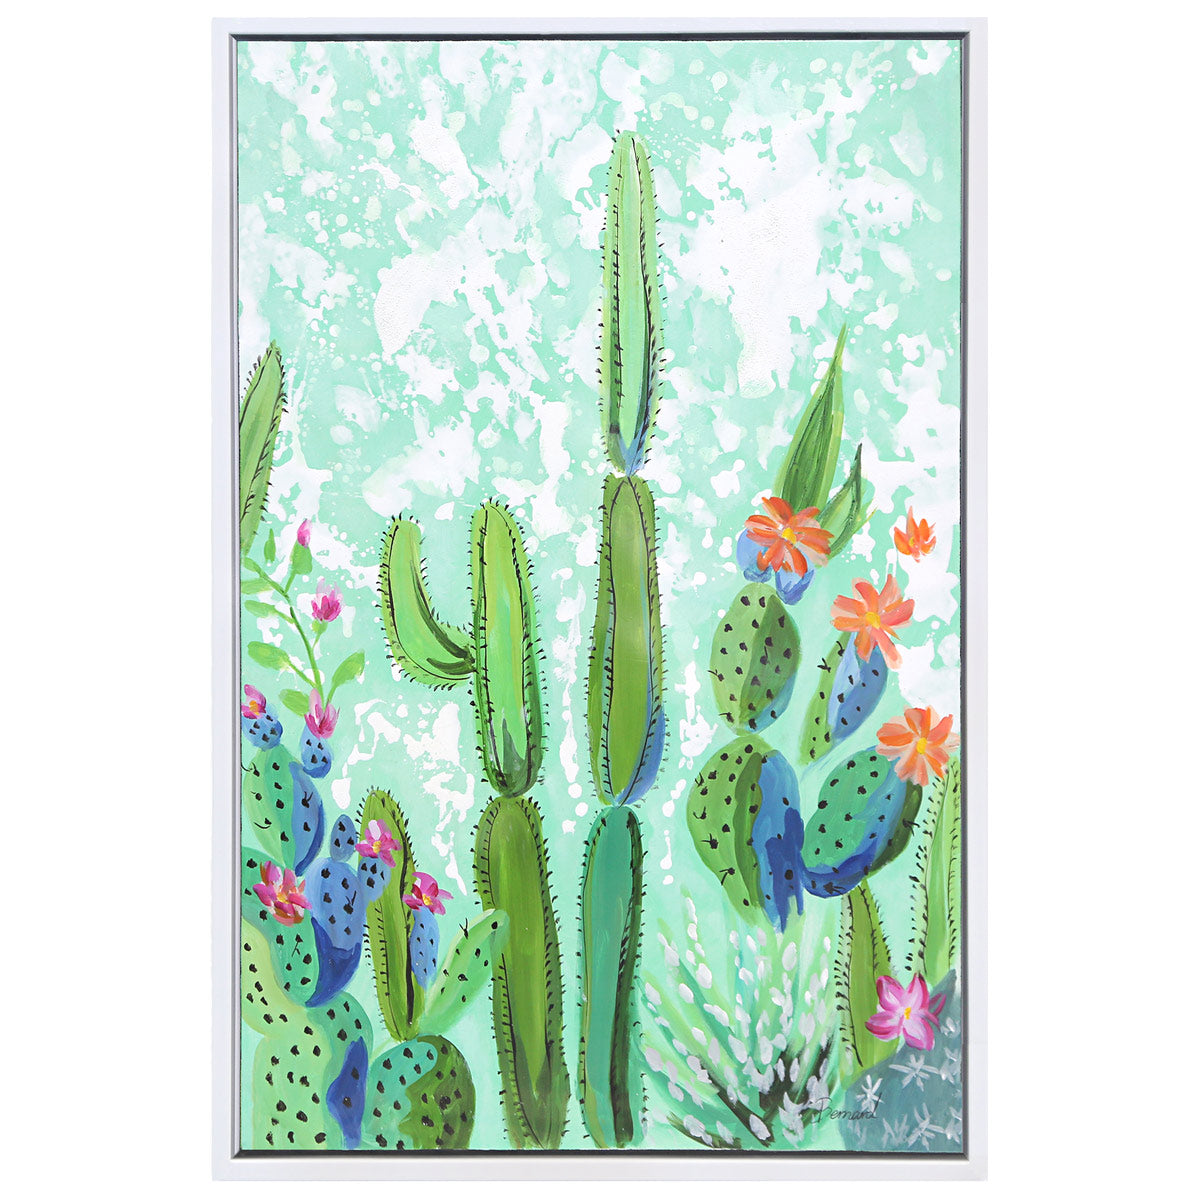 Framed painting of four cacti with cacti flowers on a blue-green watercolor style background.